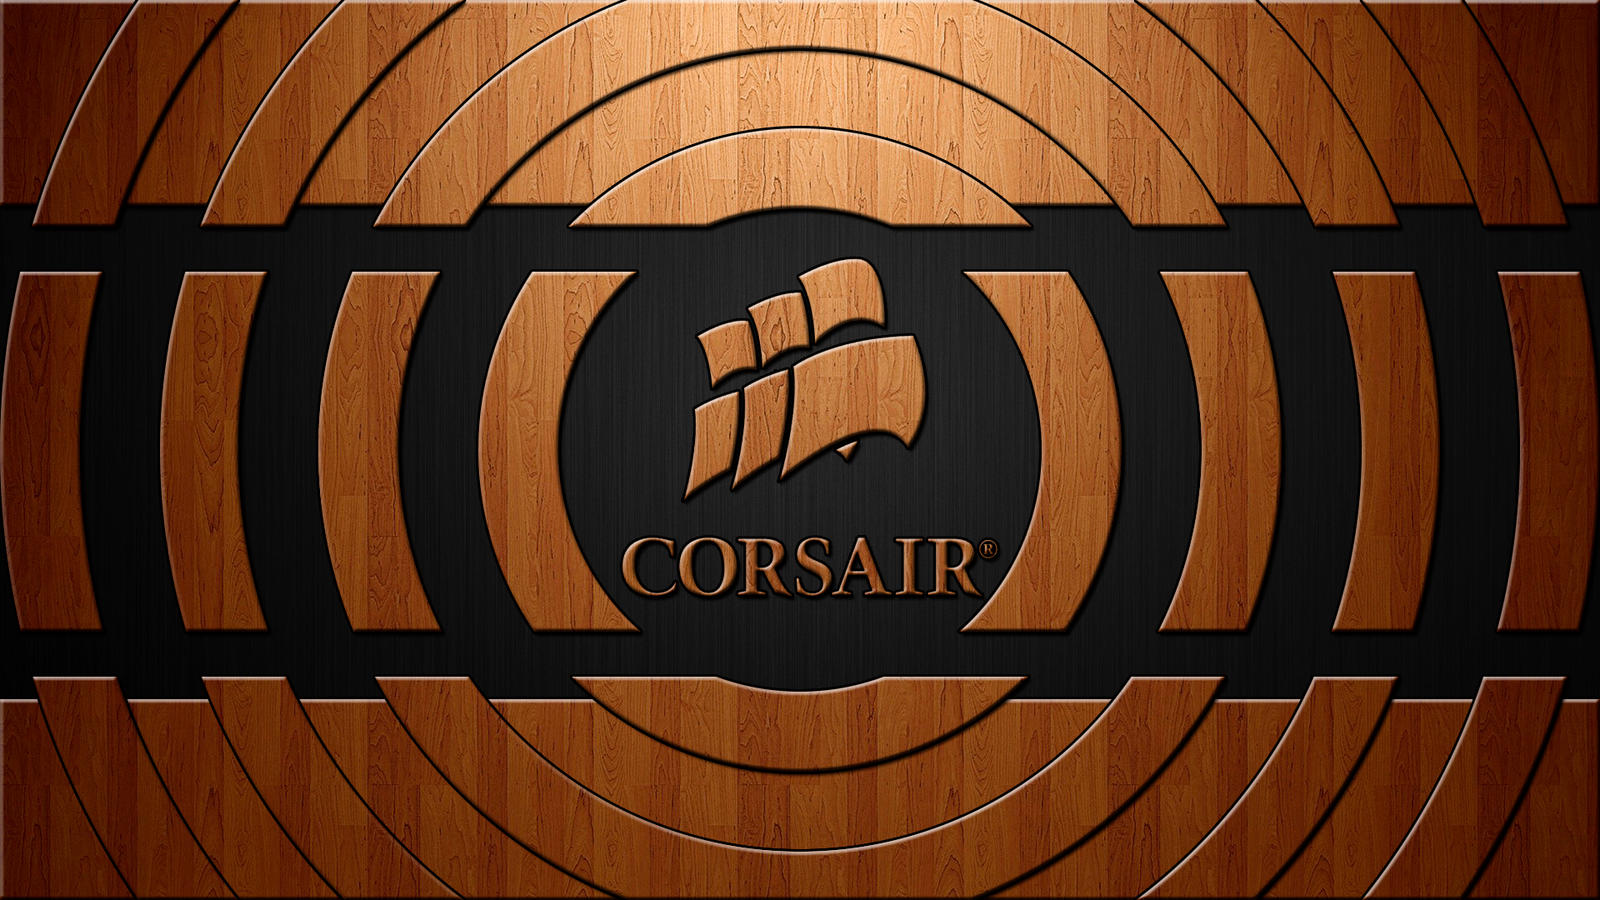 Wallpaper corsair by joancosi on deviantart for Corsair wallpaper 4k